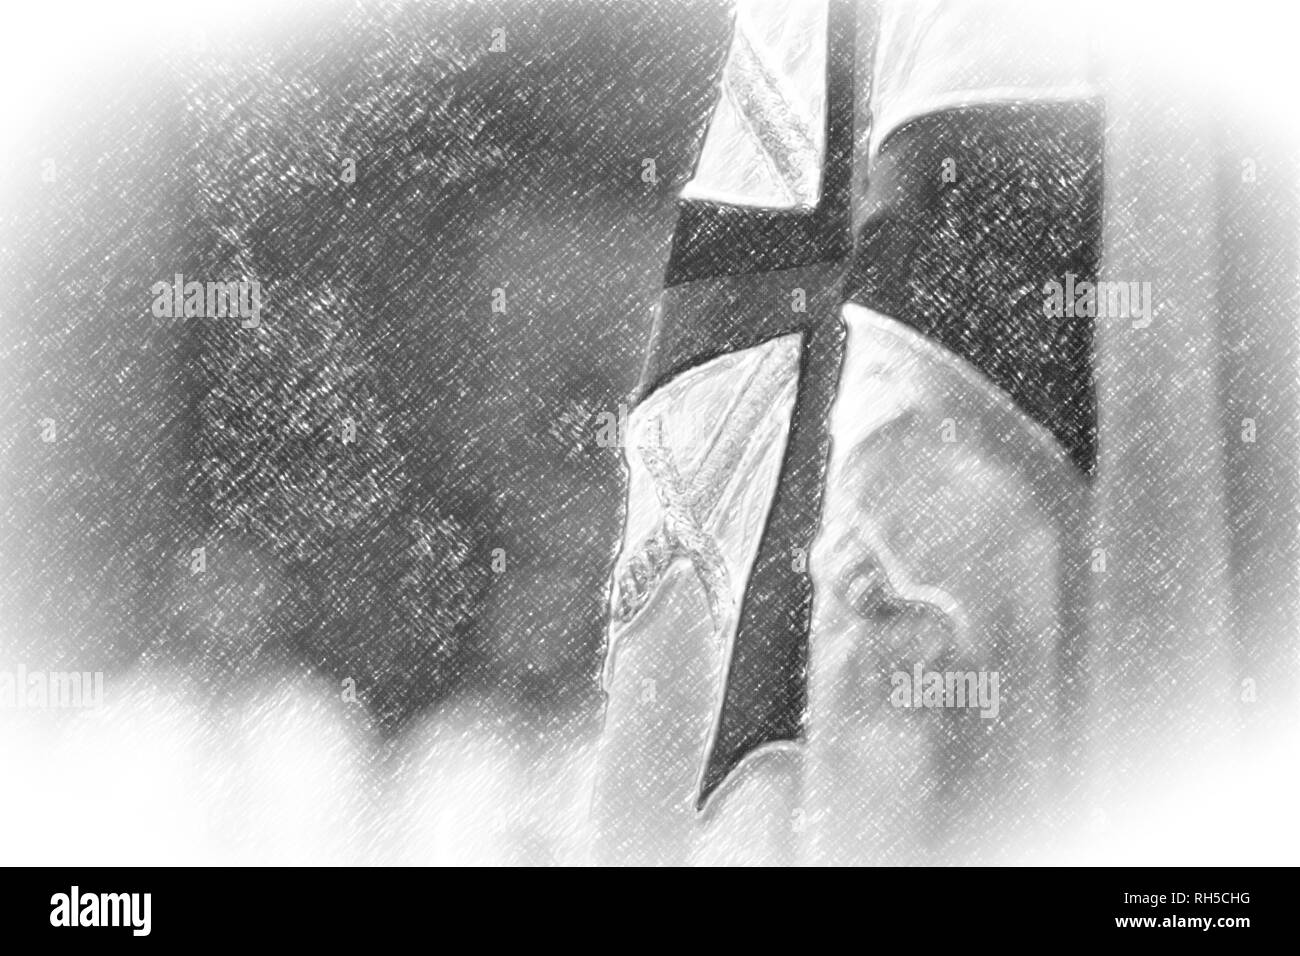 Knights Templars Black and White Stock Photos & Images - Alamy